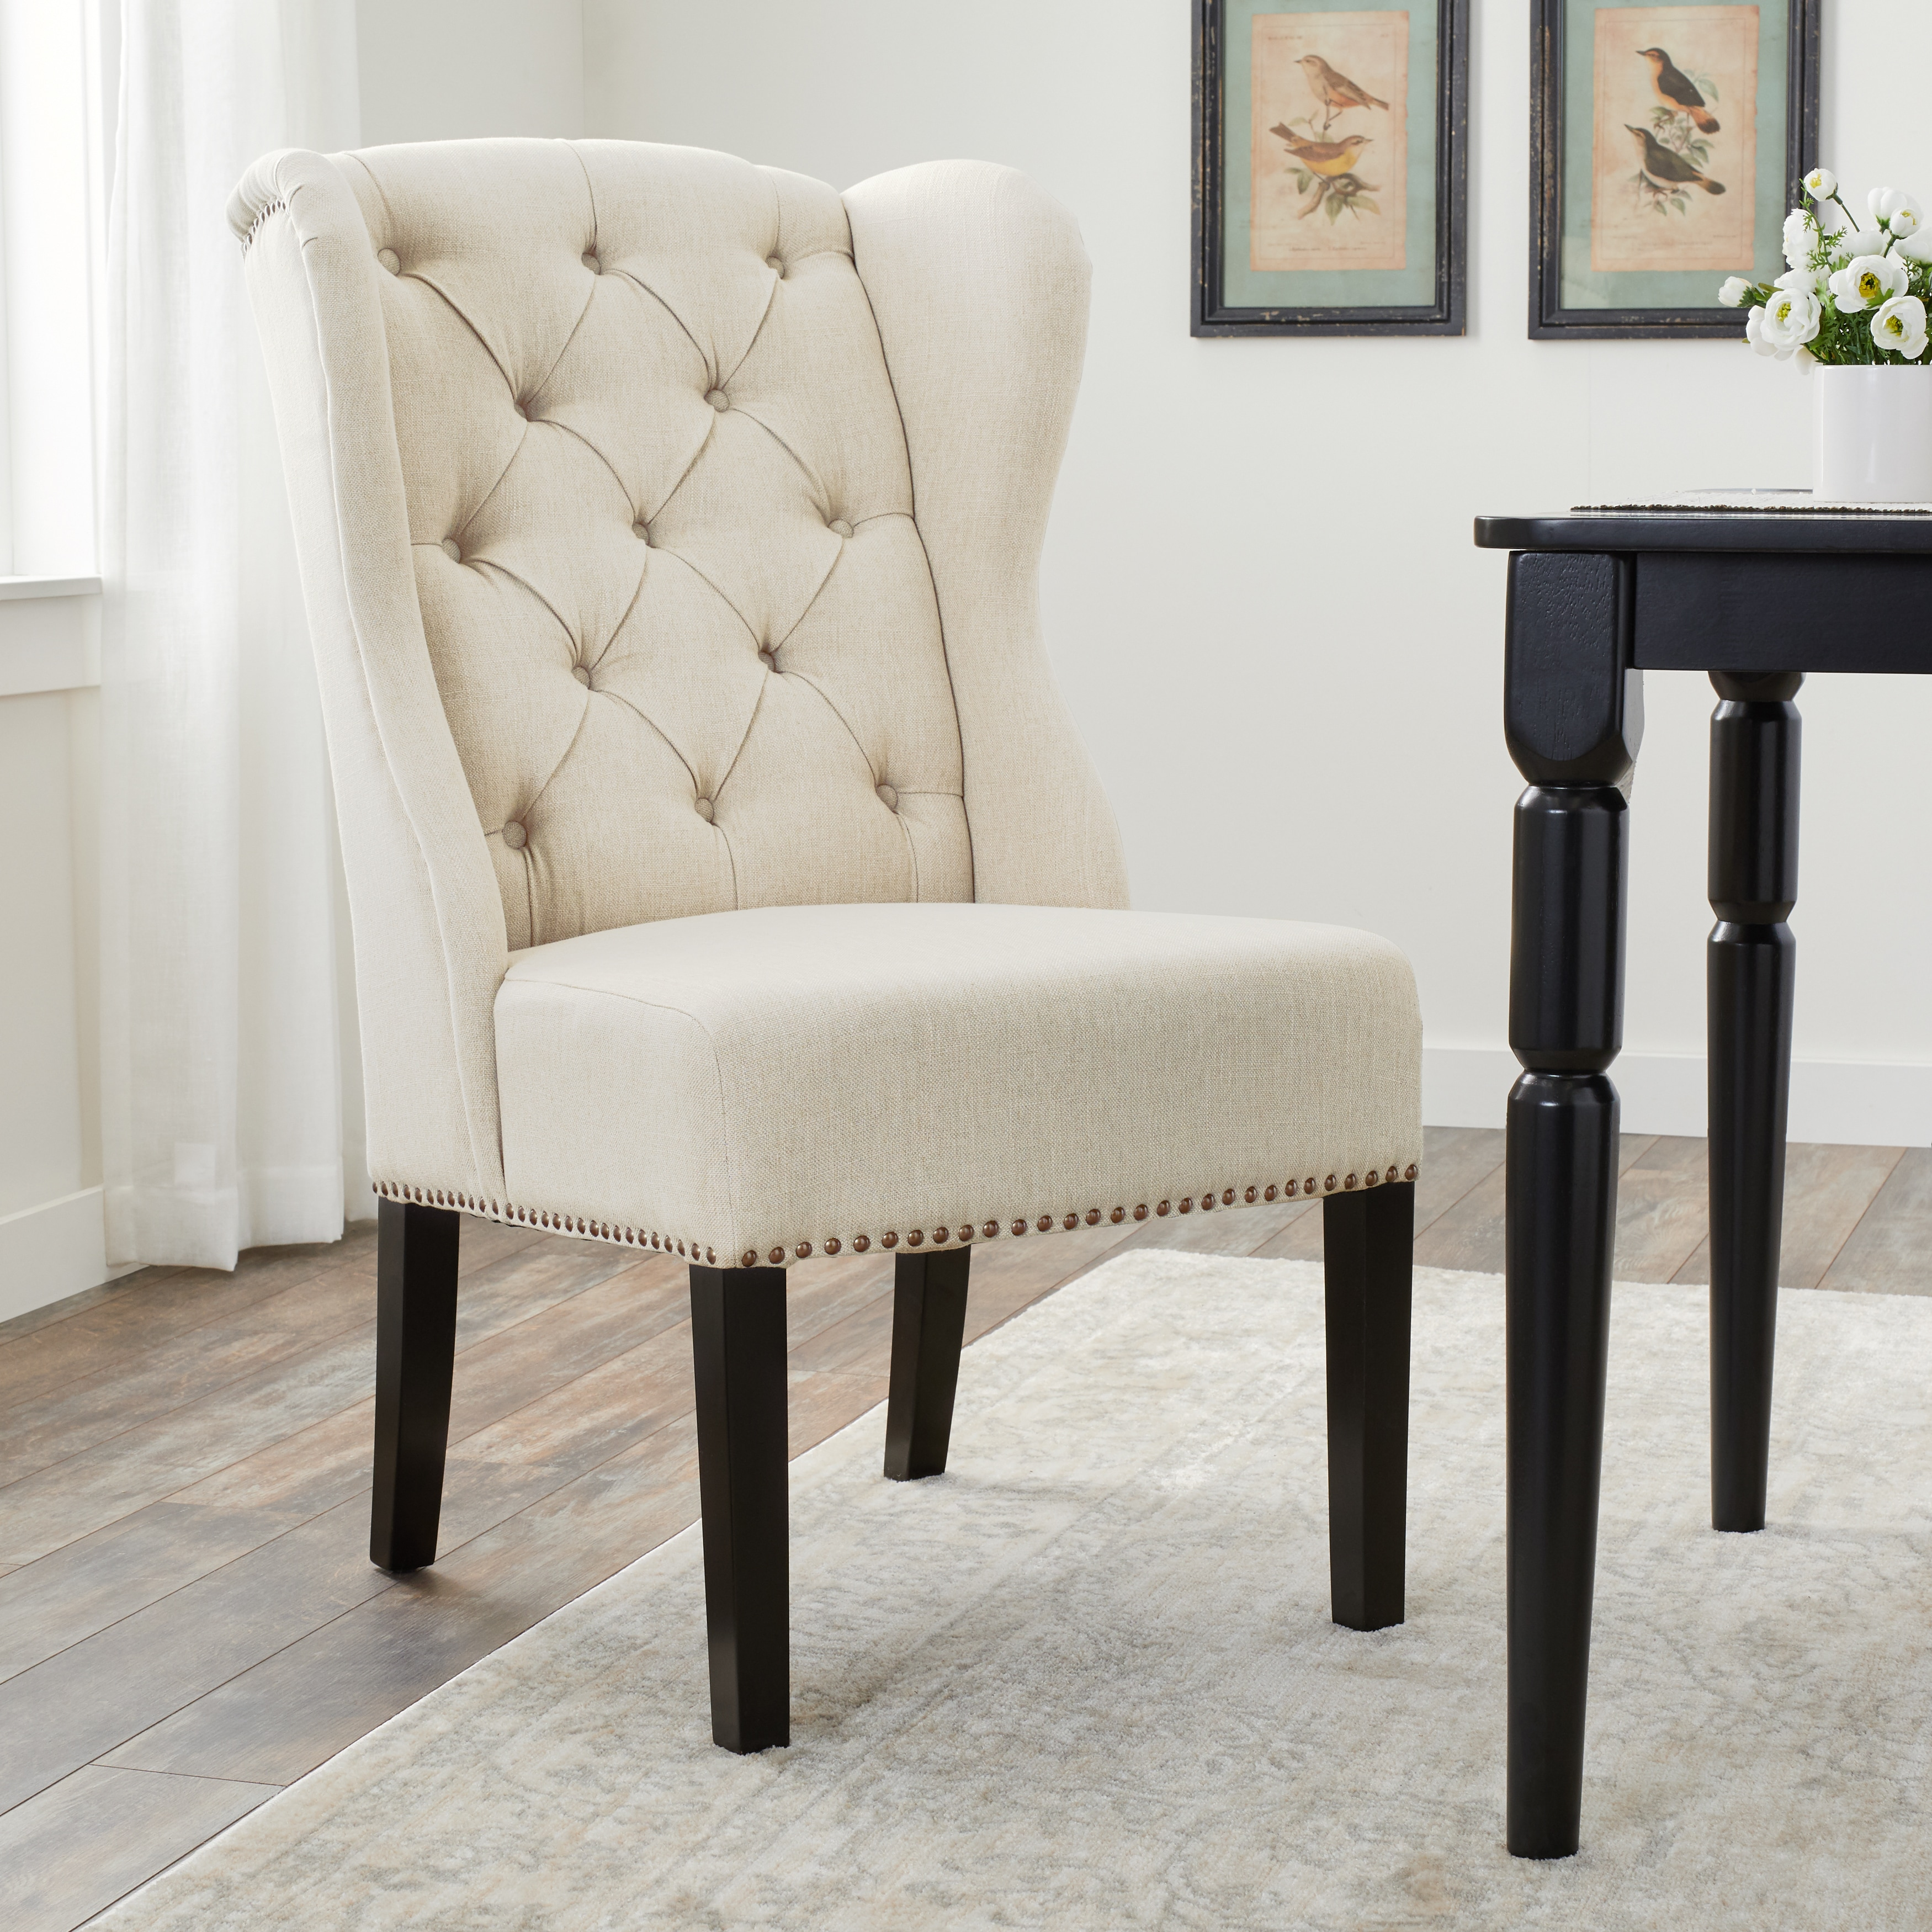 Wondrous Abbyson Sierra Tufted Cream Linen Wingback Dining Chair Pabps2019 Chair Design Images Pabps2019Com